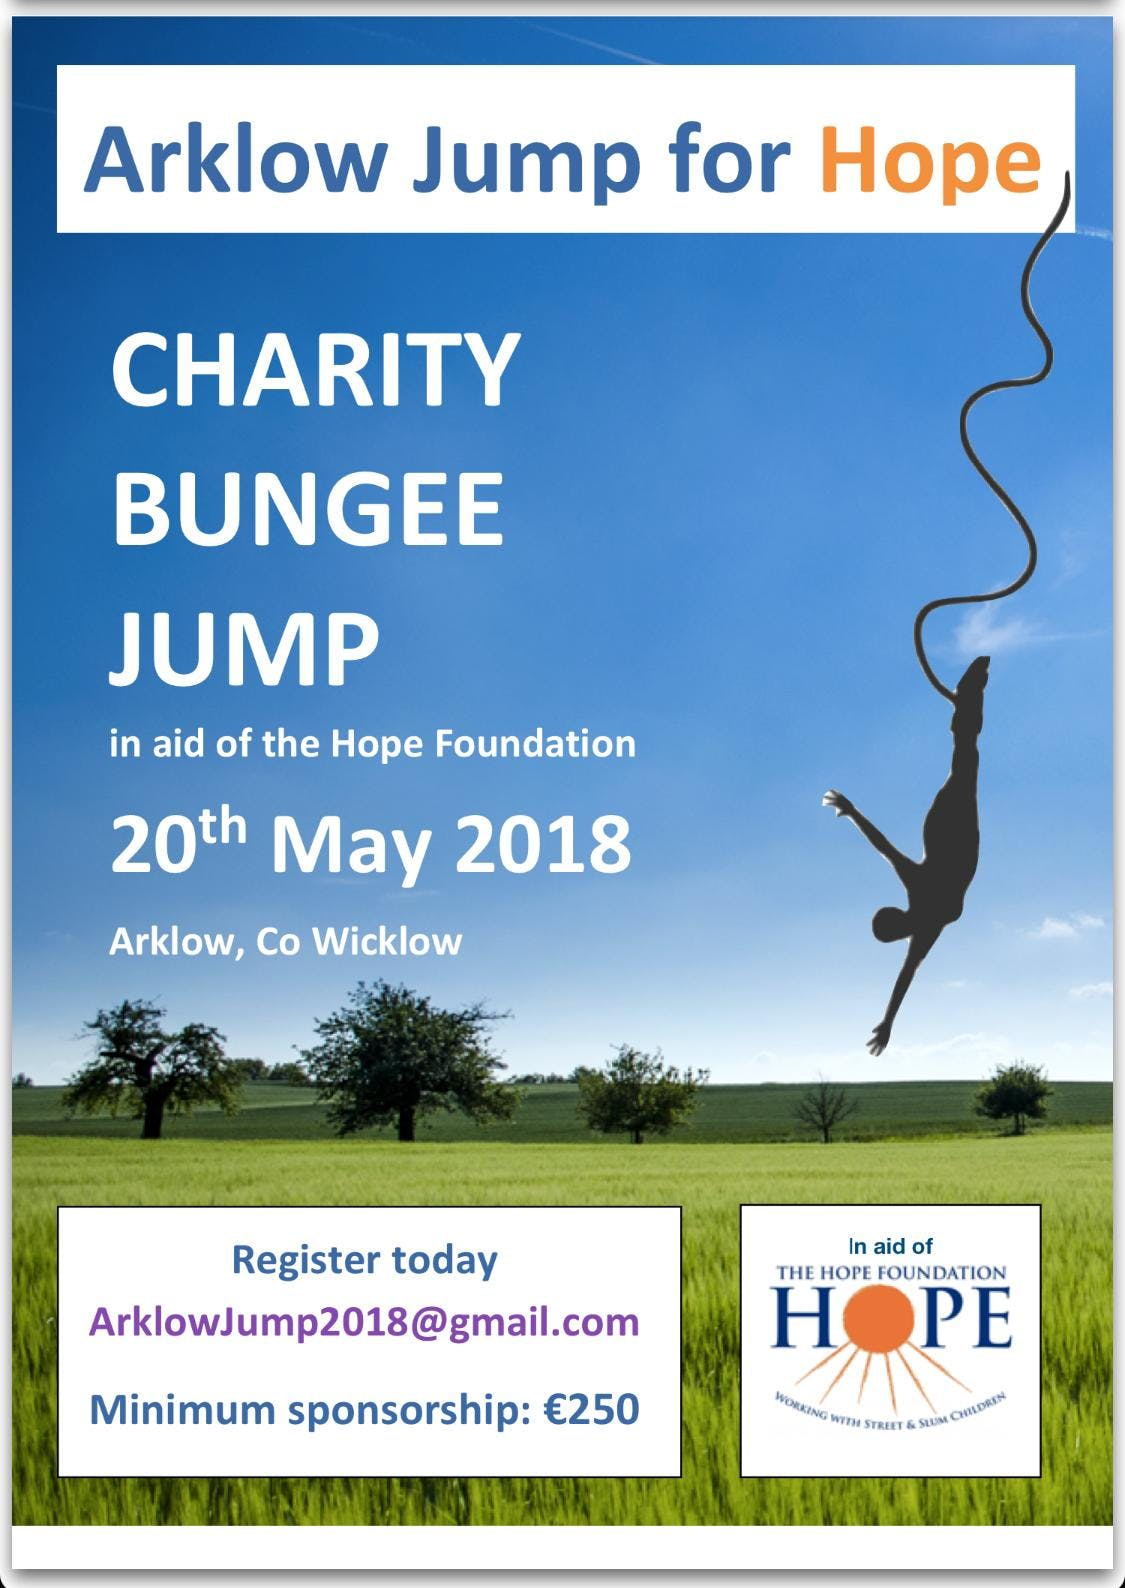 Bungee Jump - Arklow Jump for Hope